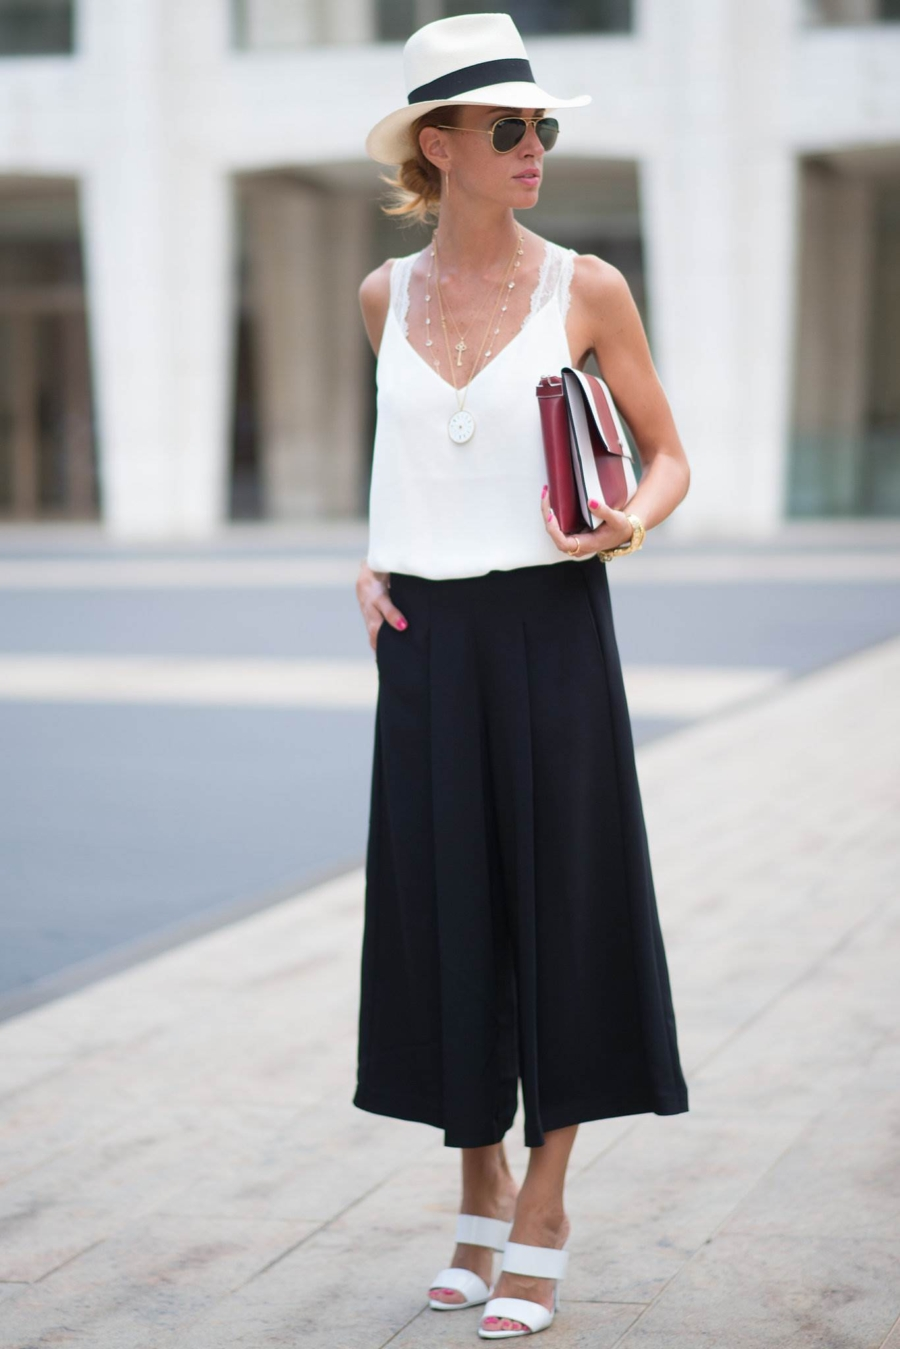 Black Culottes - 5 Styles of Culottes That Proves They're For Everyone // NotJessFashion.com